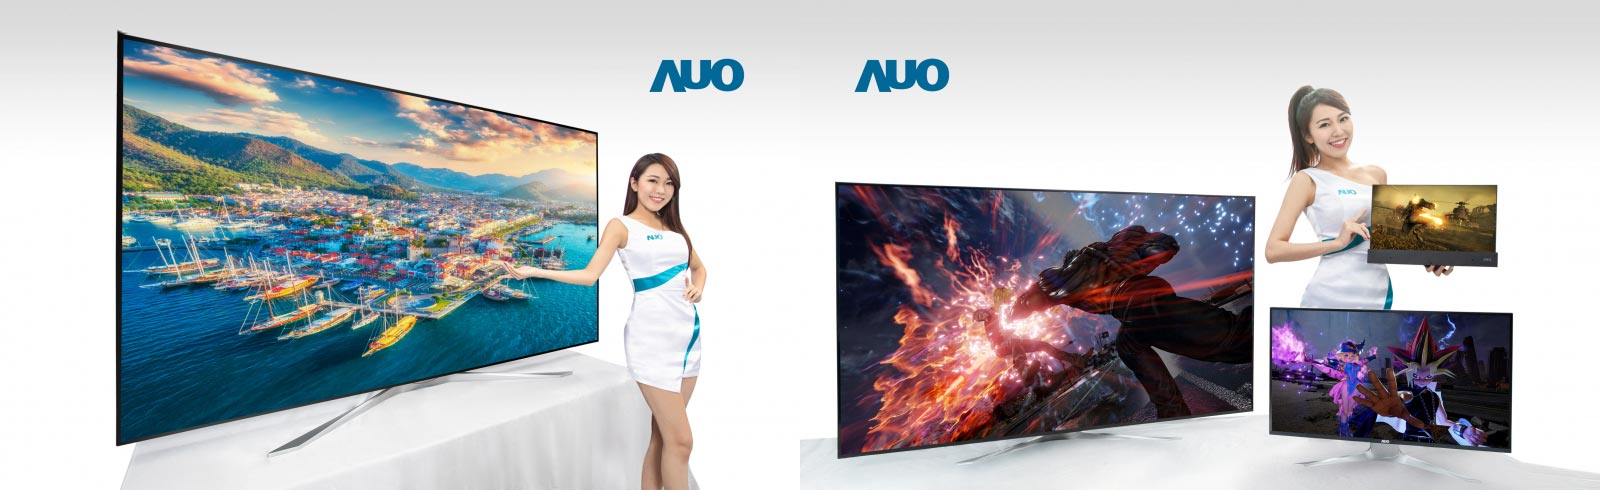 AUO will showcase an 85-inch 8K TV and a 65-inch 4K gaming monitor with Mini LEDs